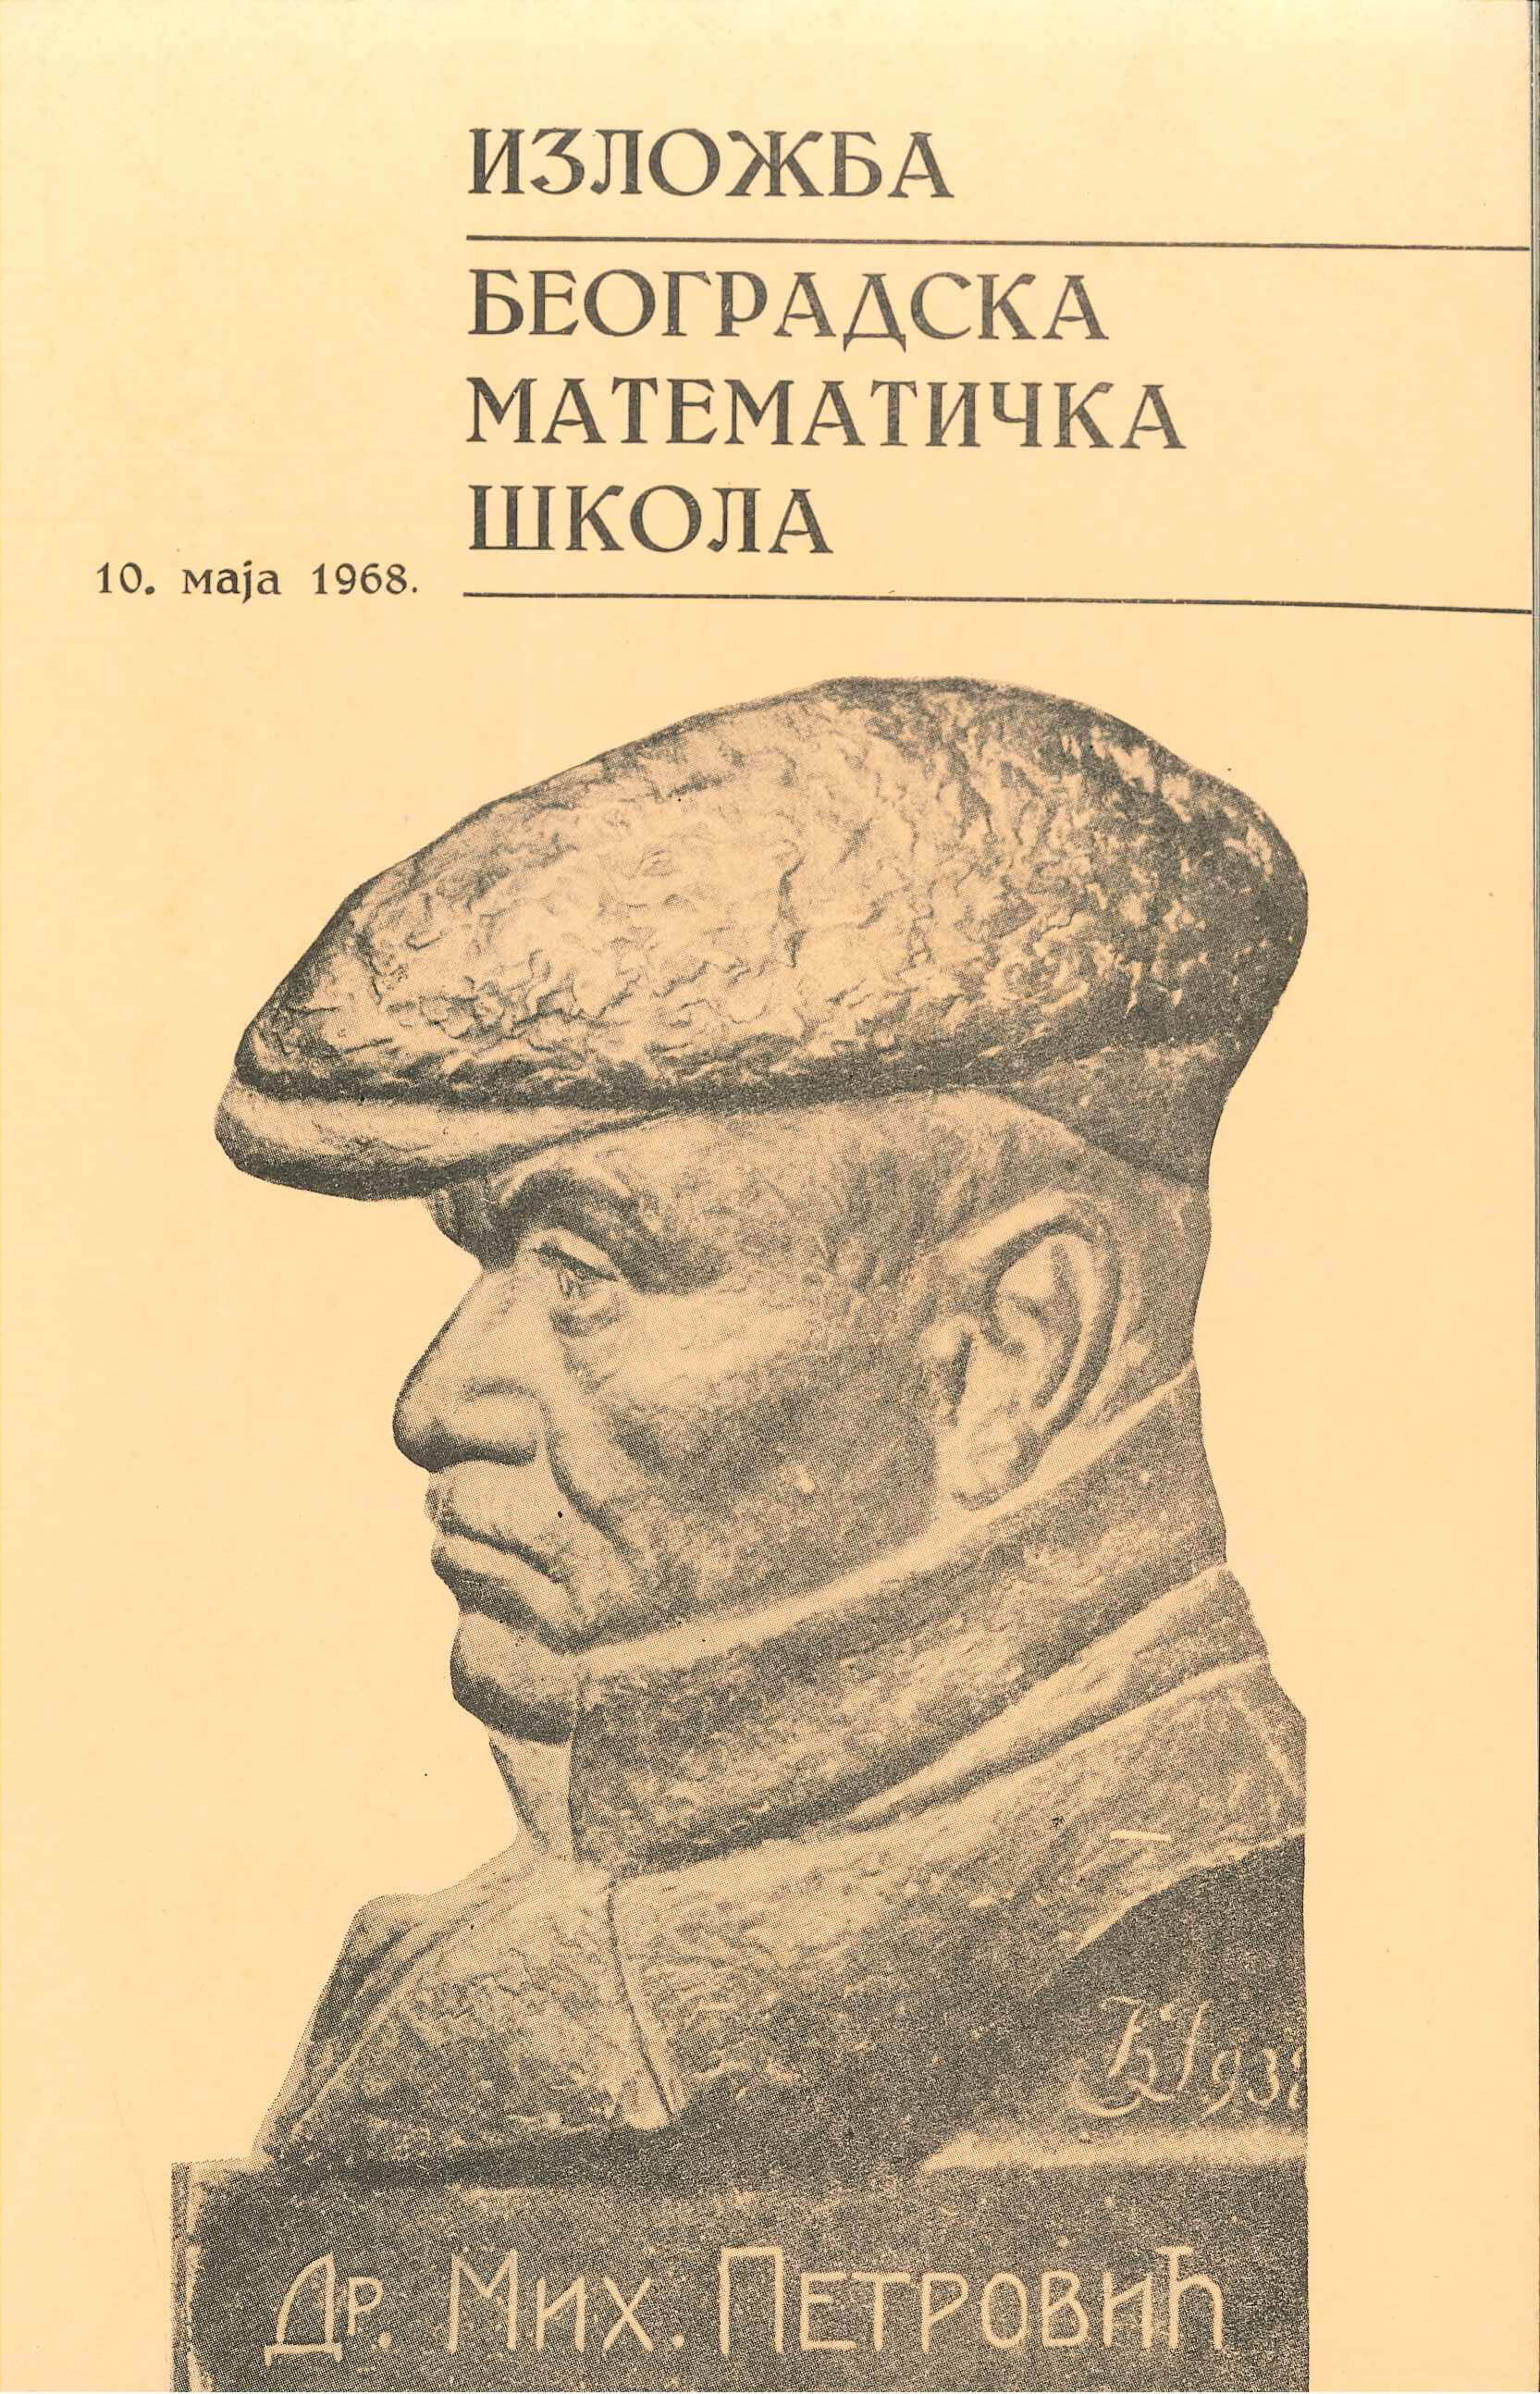 The cover page of the catalog for the exhibition organized in the Archive of Serbia, in 1968.